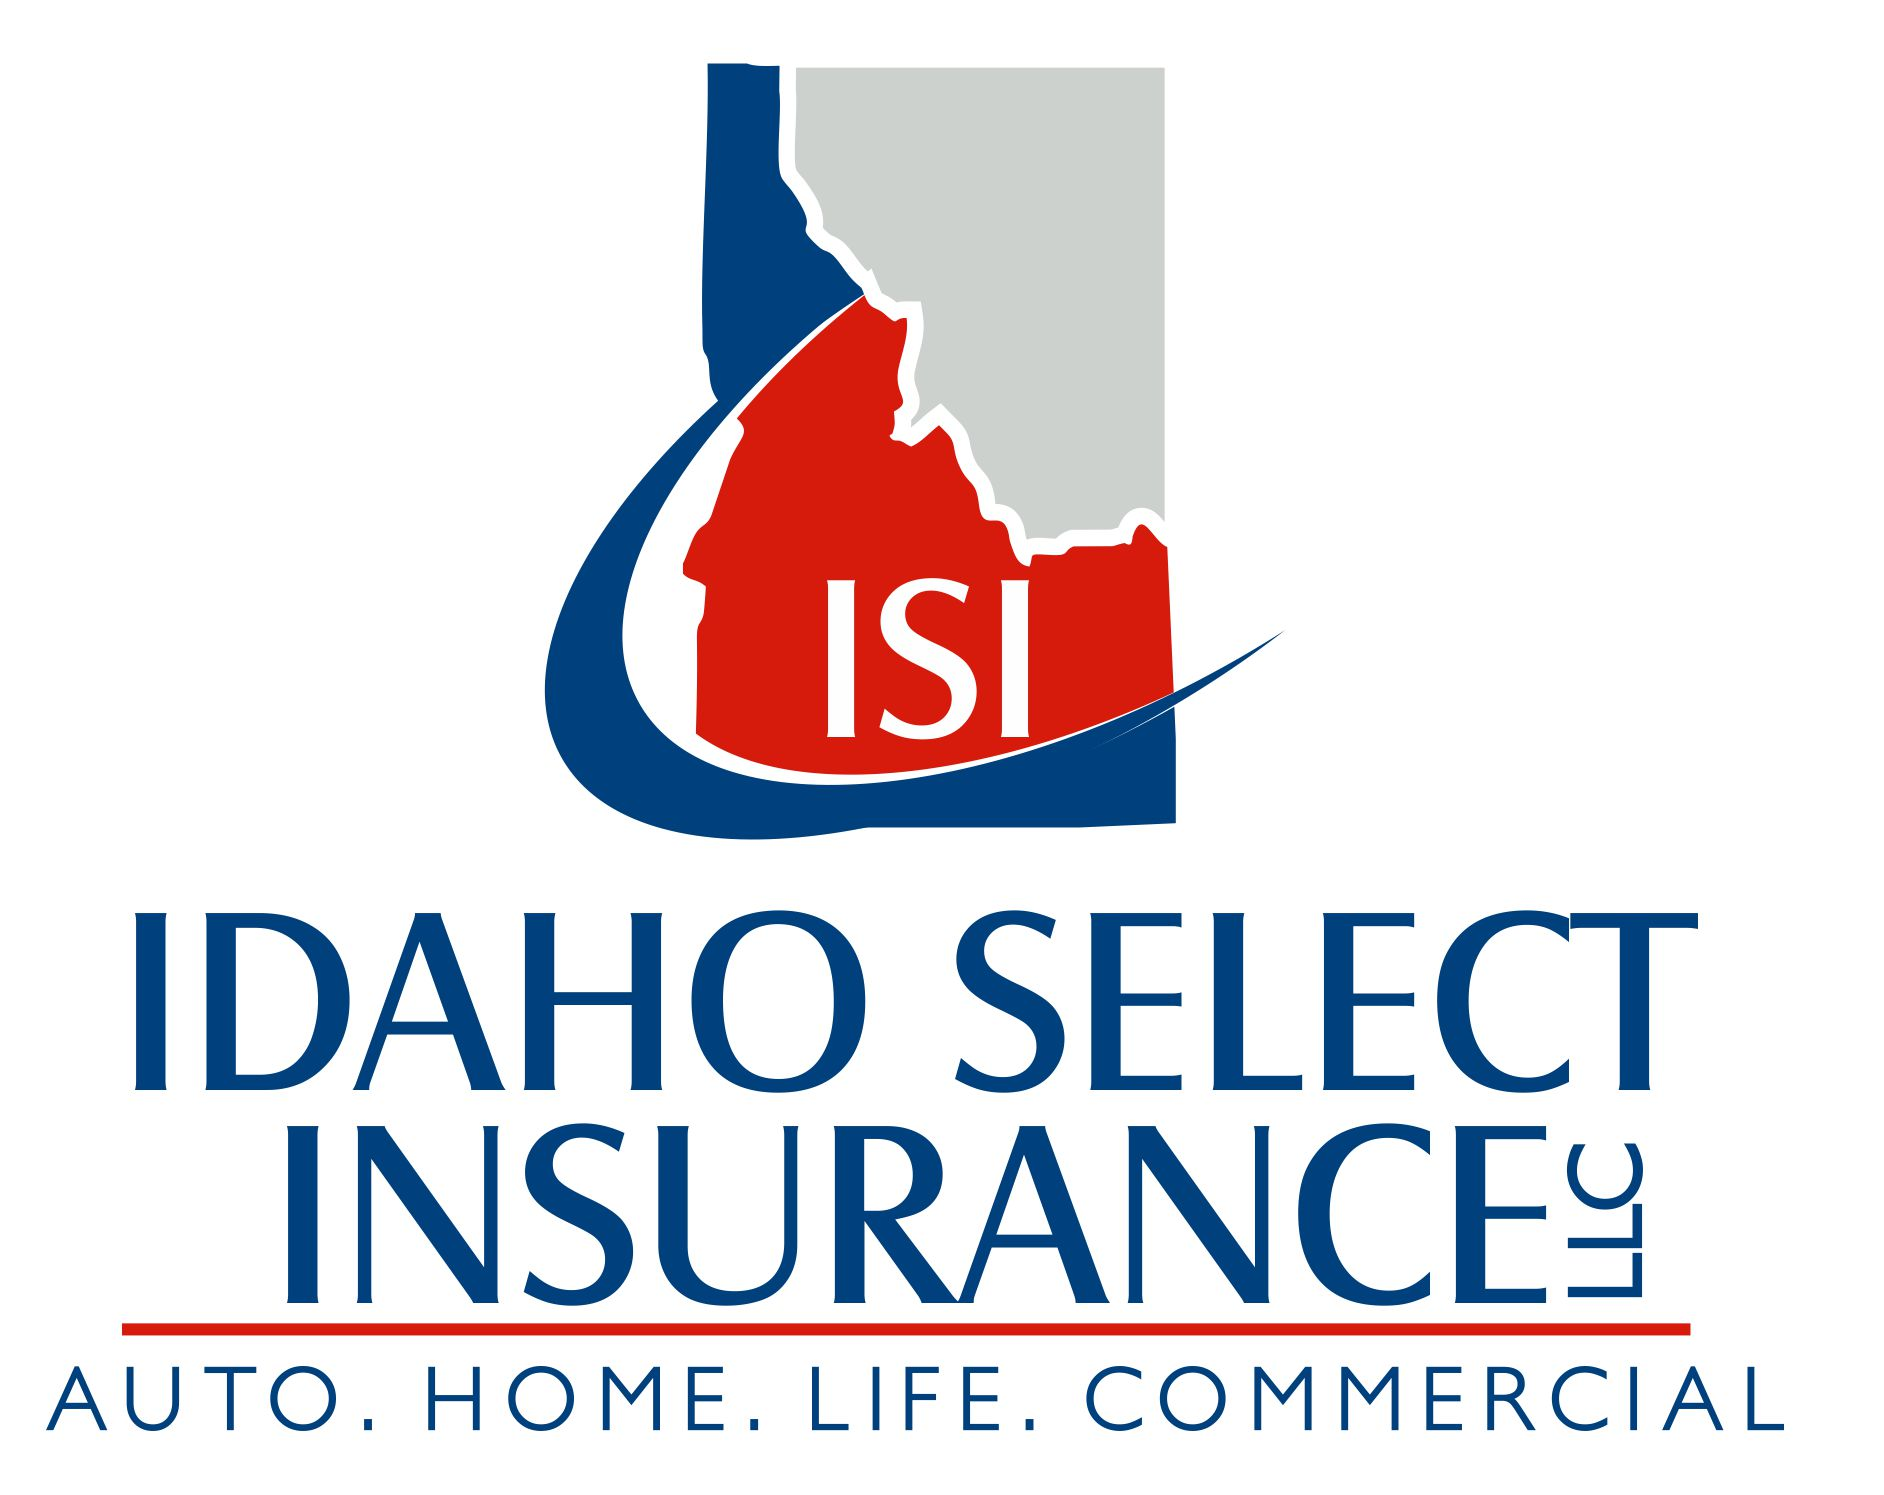 Select Quote Life Insurance Meridian Id Insurance Agents  Idaho Select Insurance  Idaho